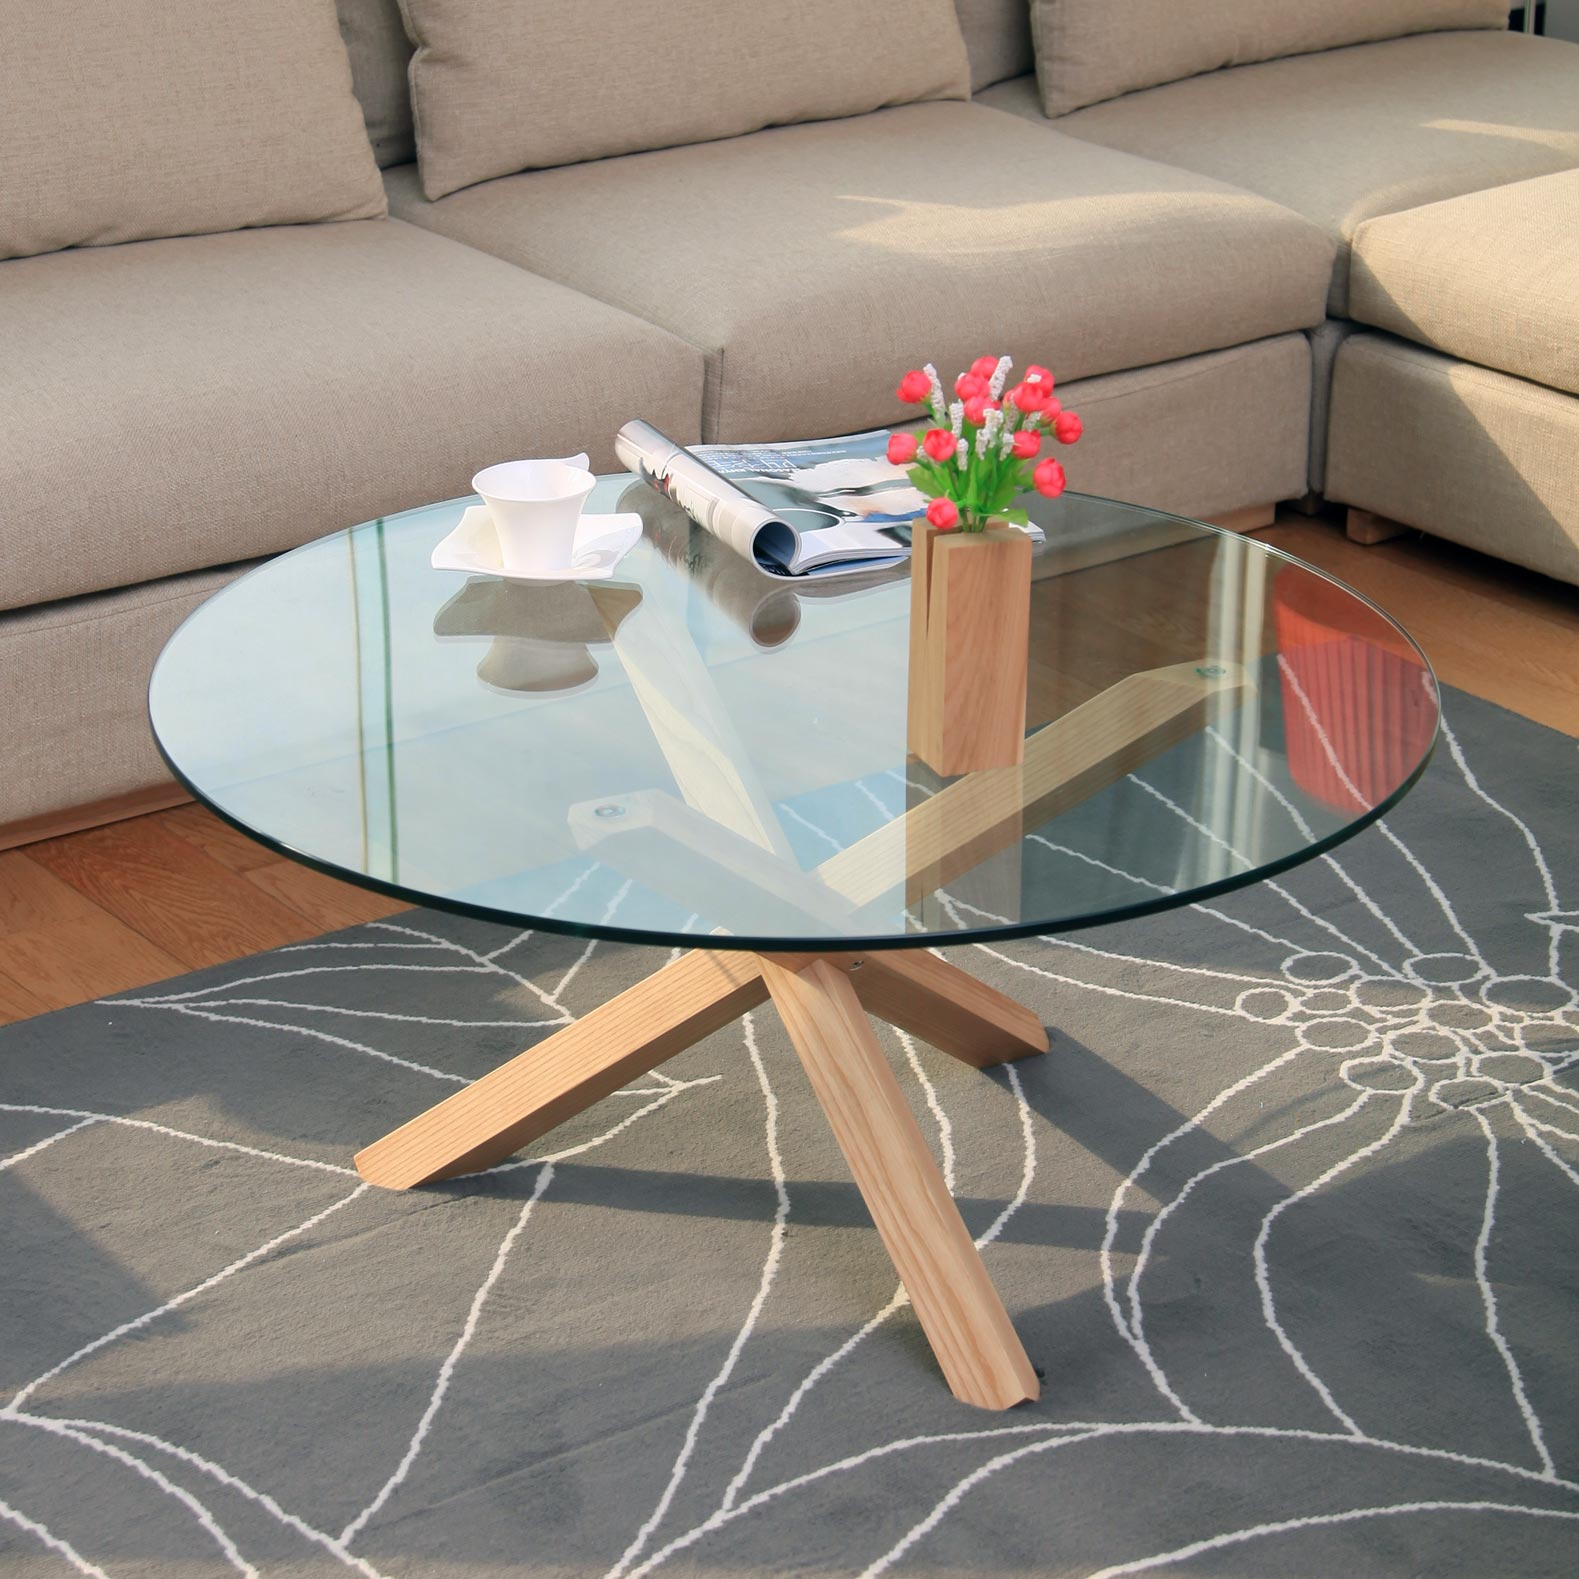 Furniture minimalist living room coffee table small side - Round glass tables for living room ...